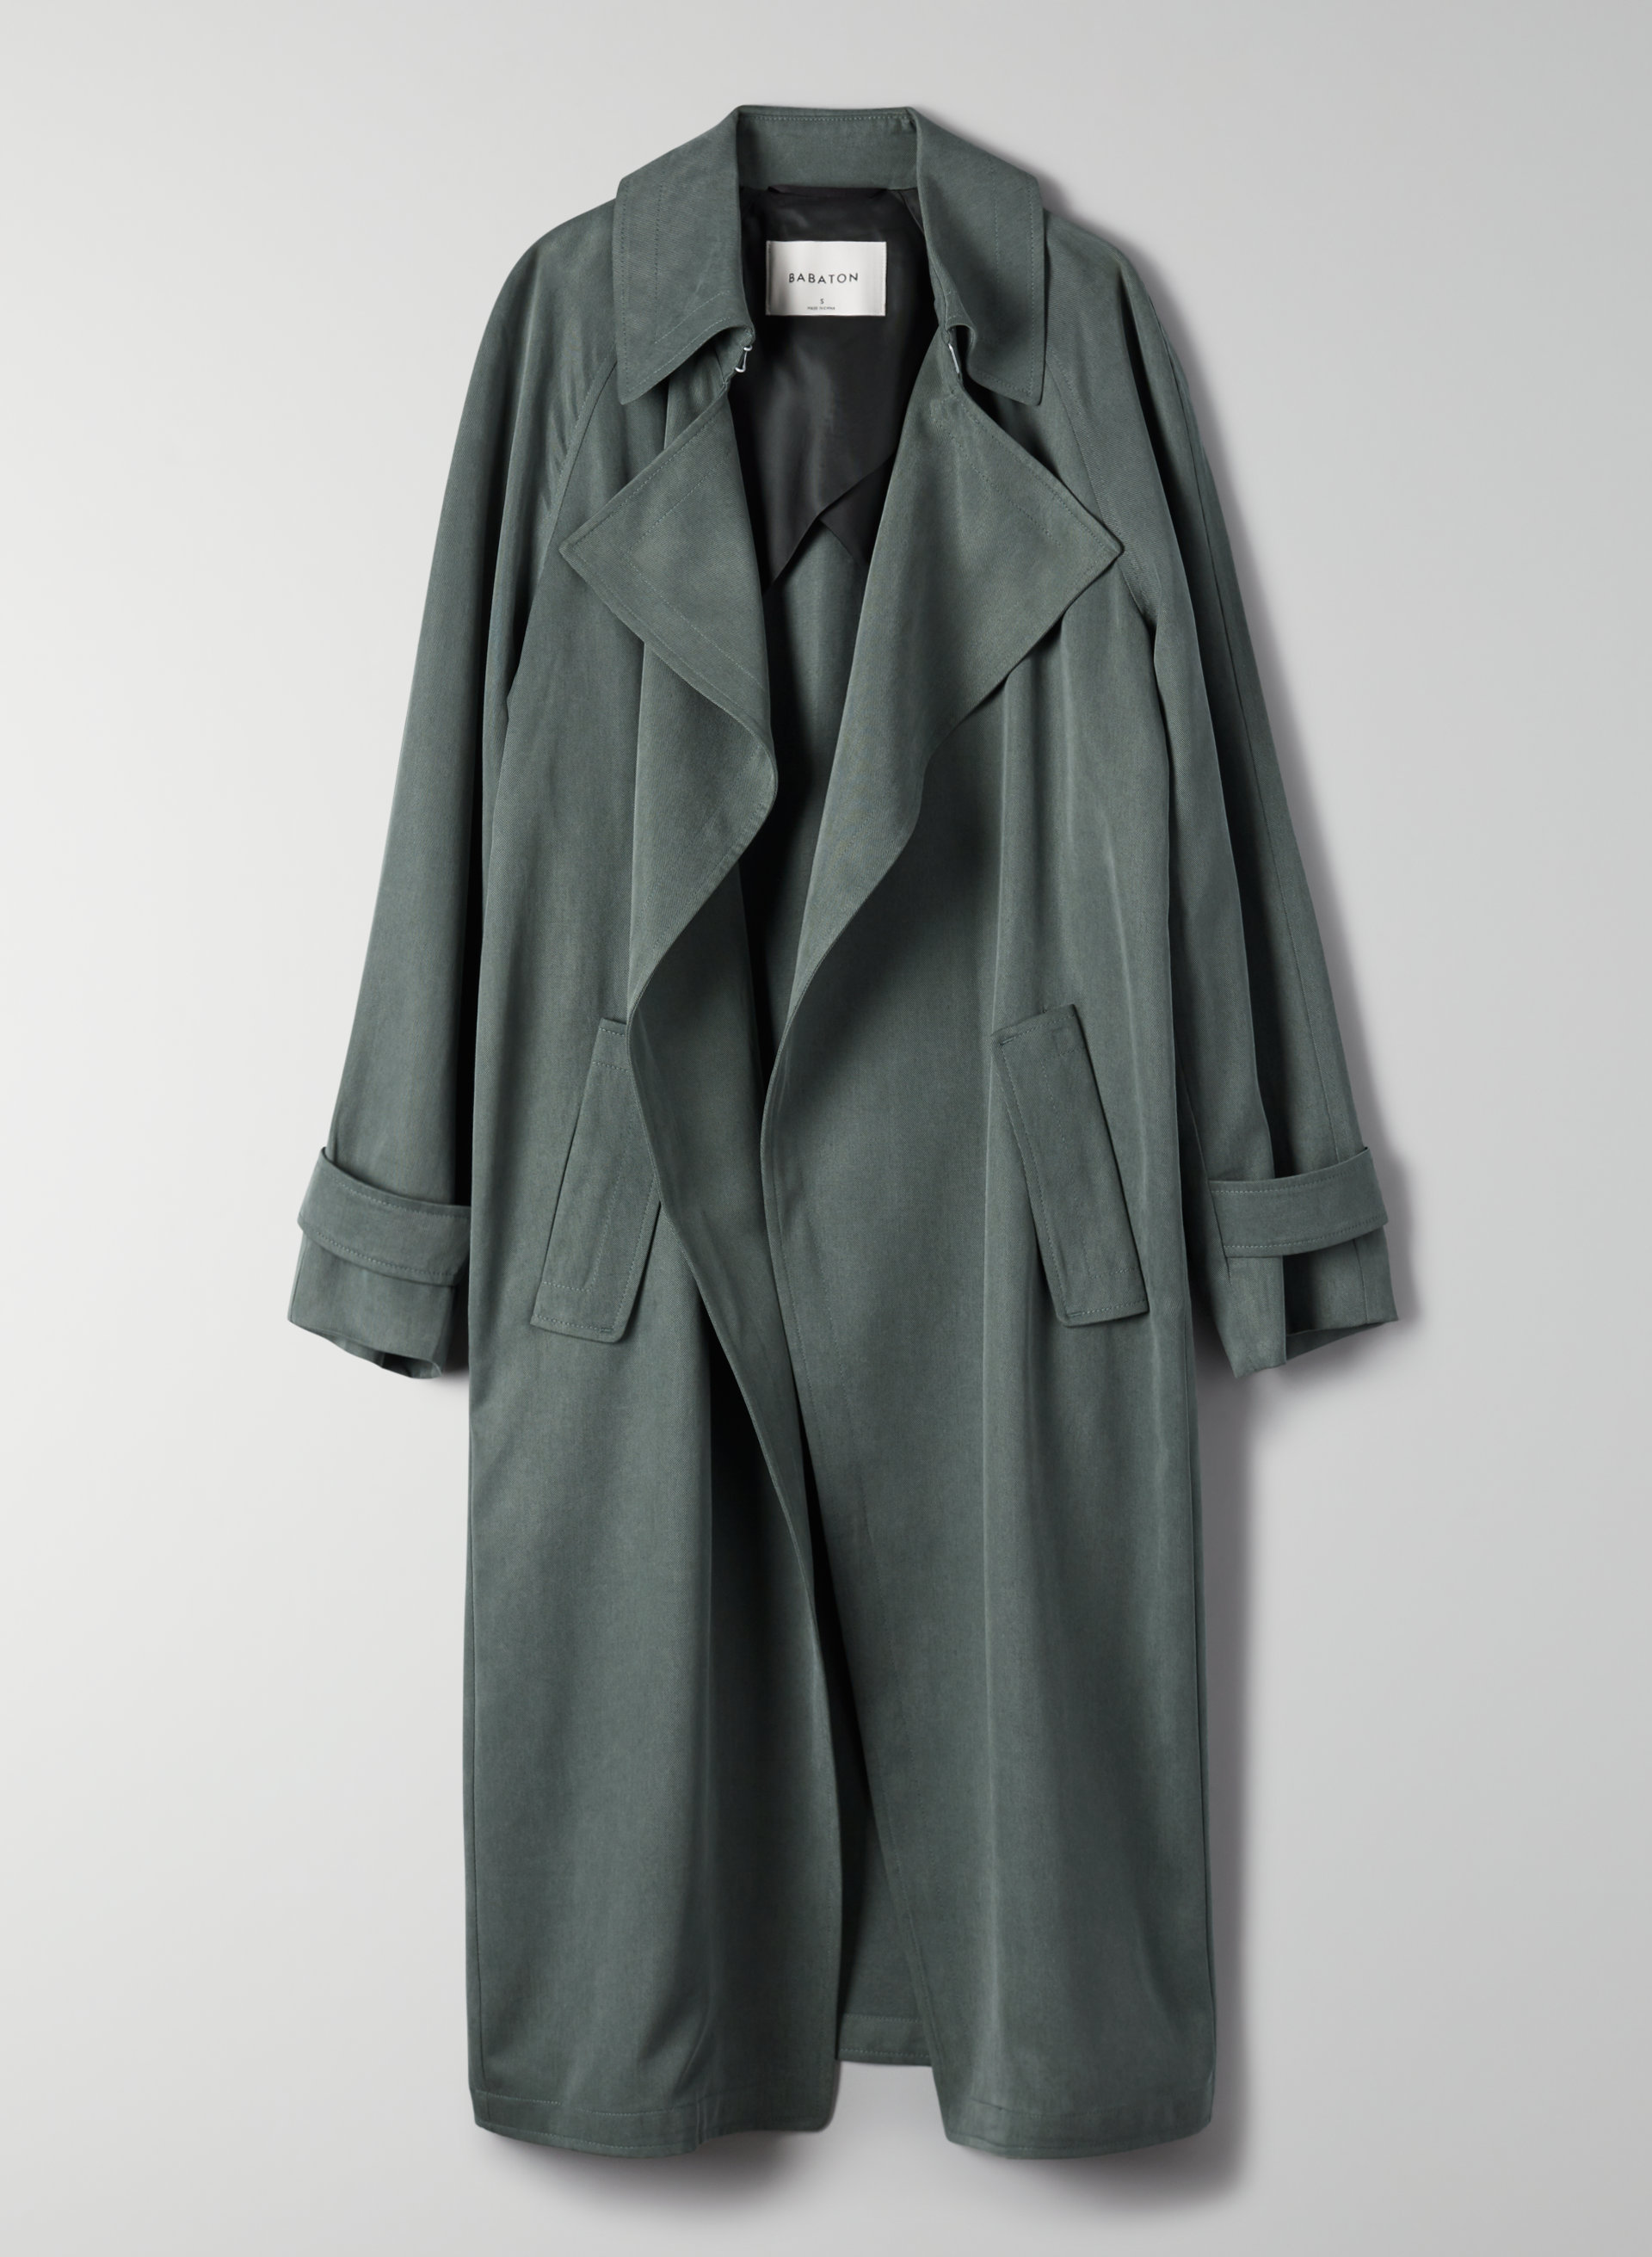 competitive price coupon code variety design Babaton LAWSON TRENCH COAT | Aritzia US